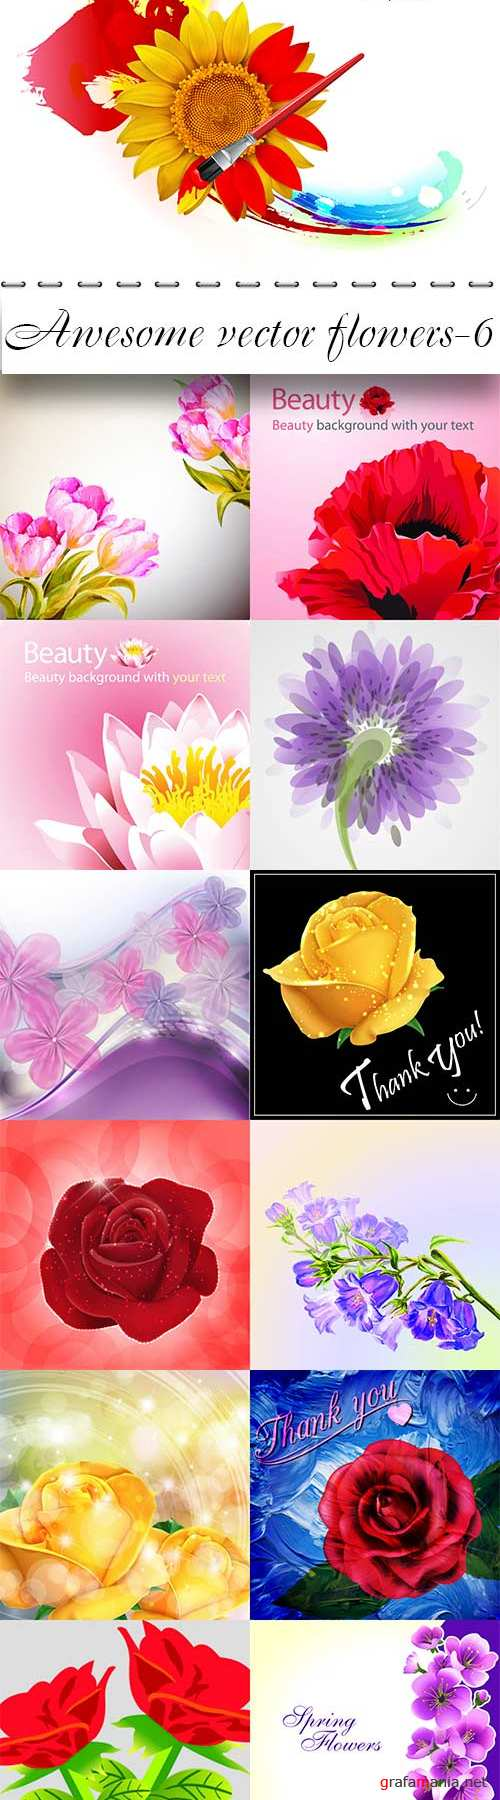 Awesome vector flowers-6